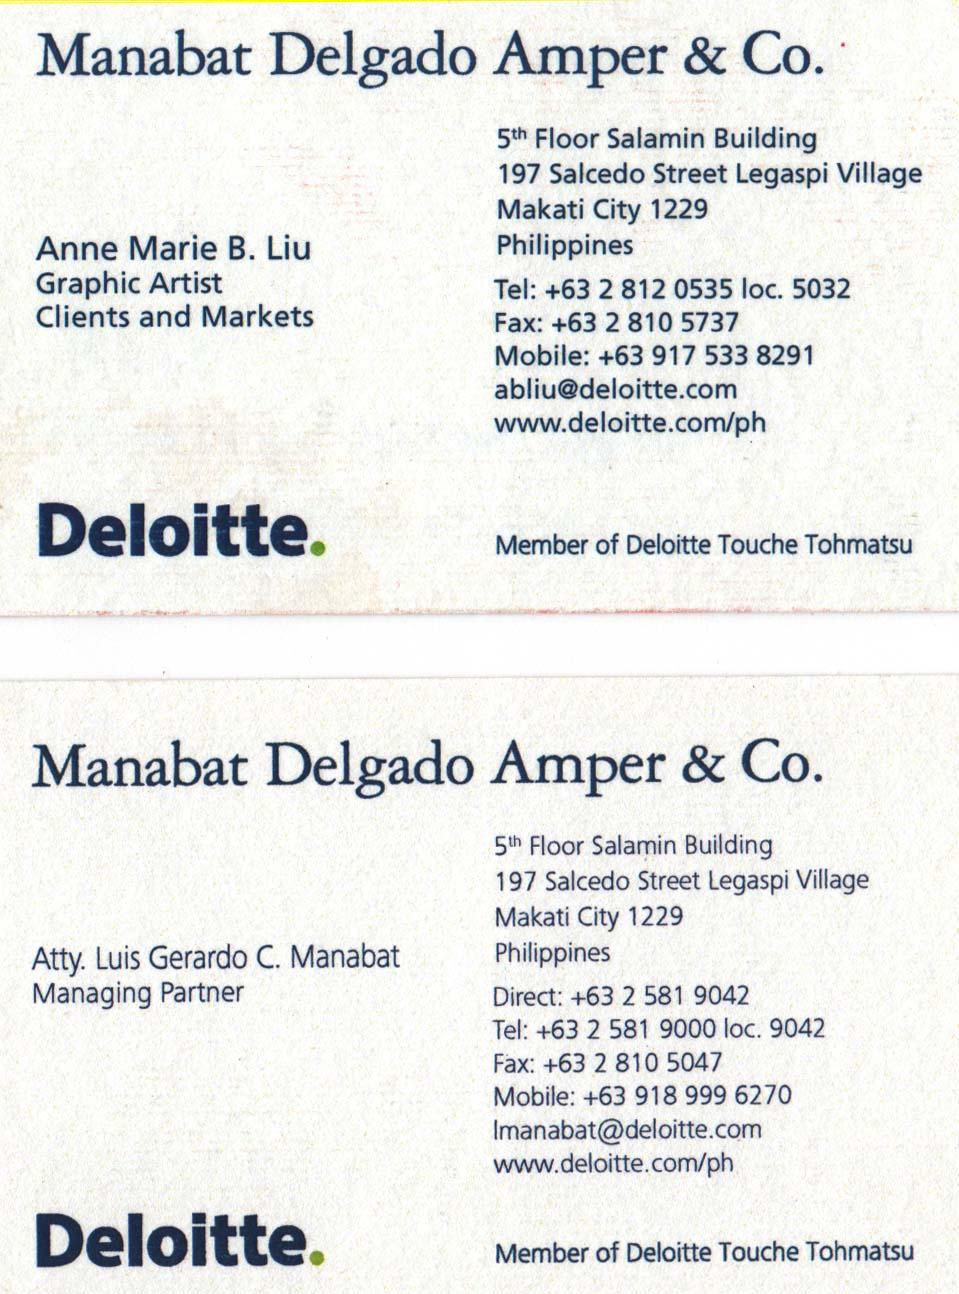 Deloitte Business Card Pictures To Pin On Pinterest